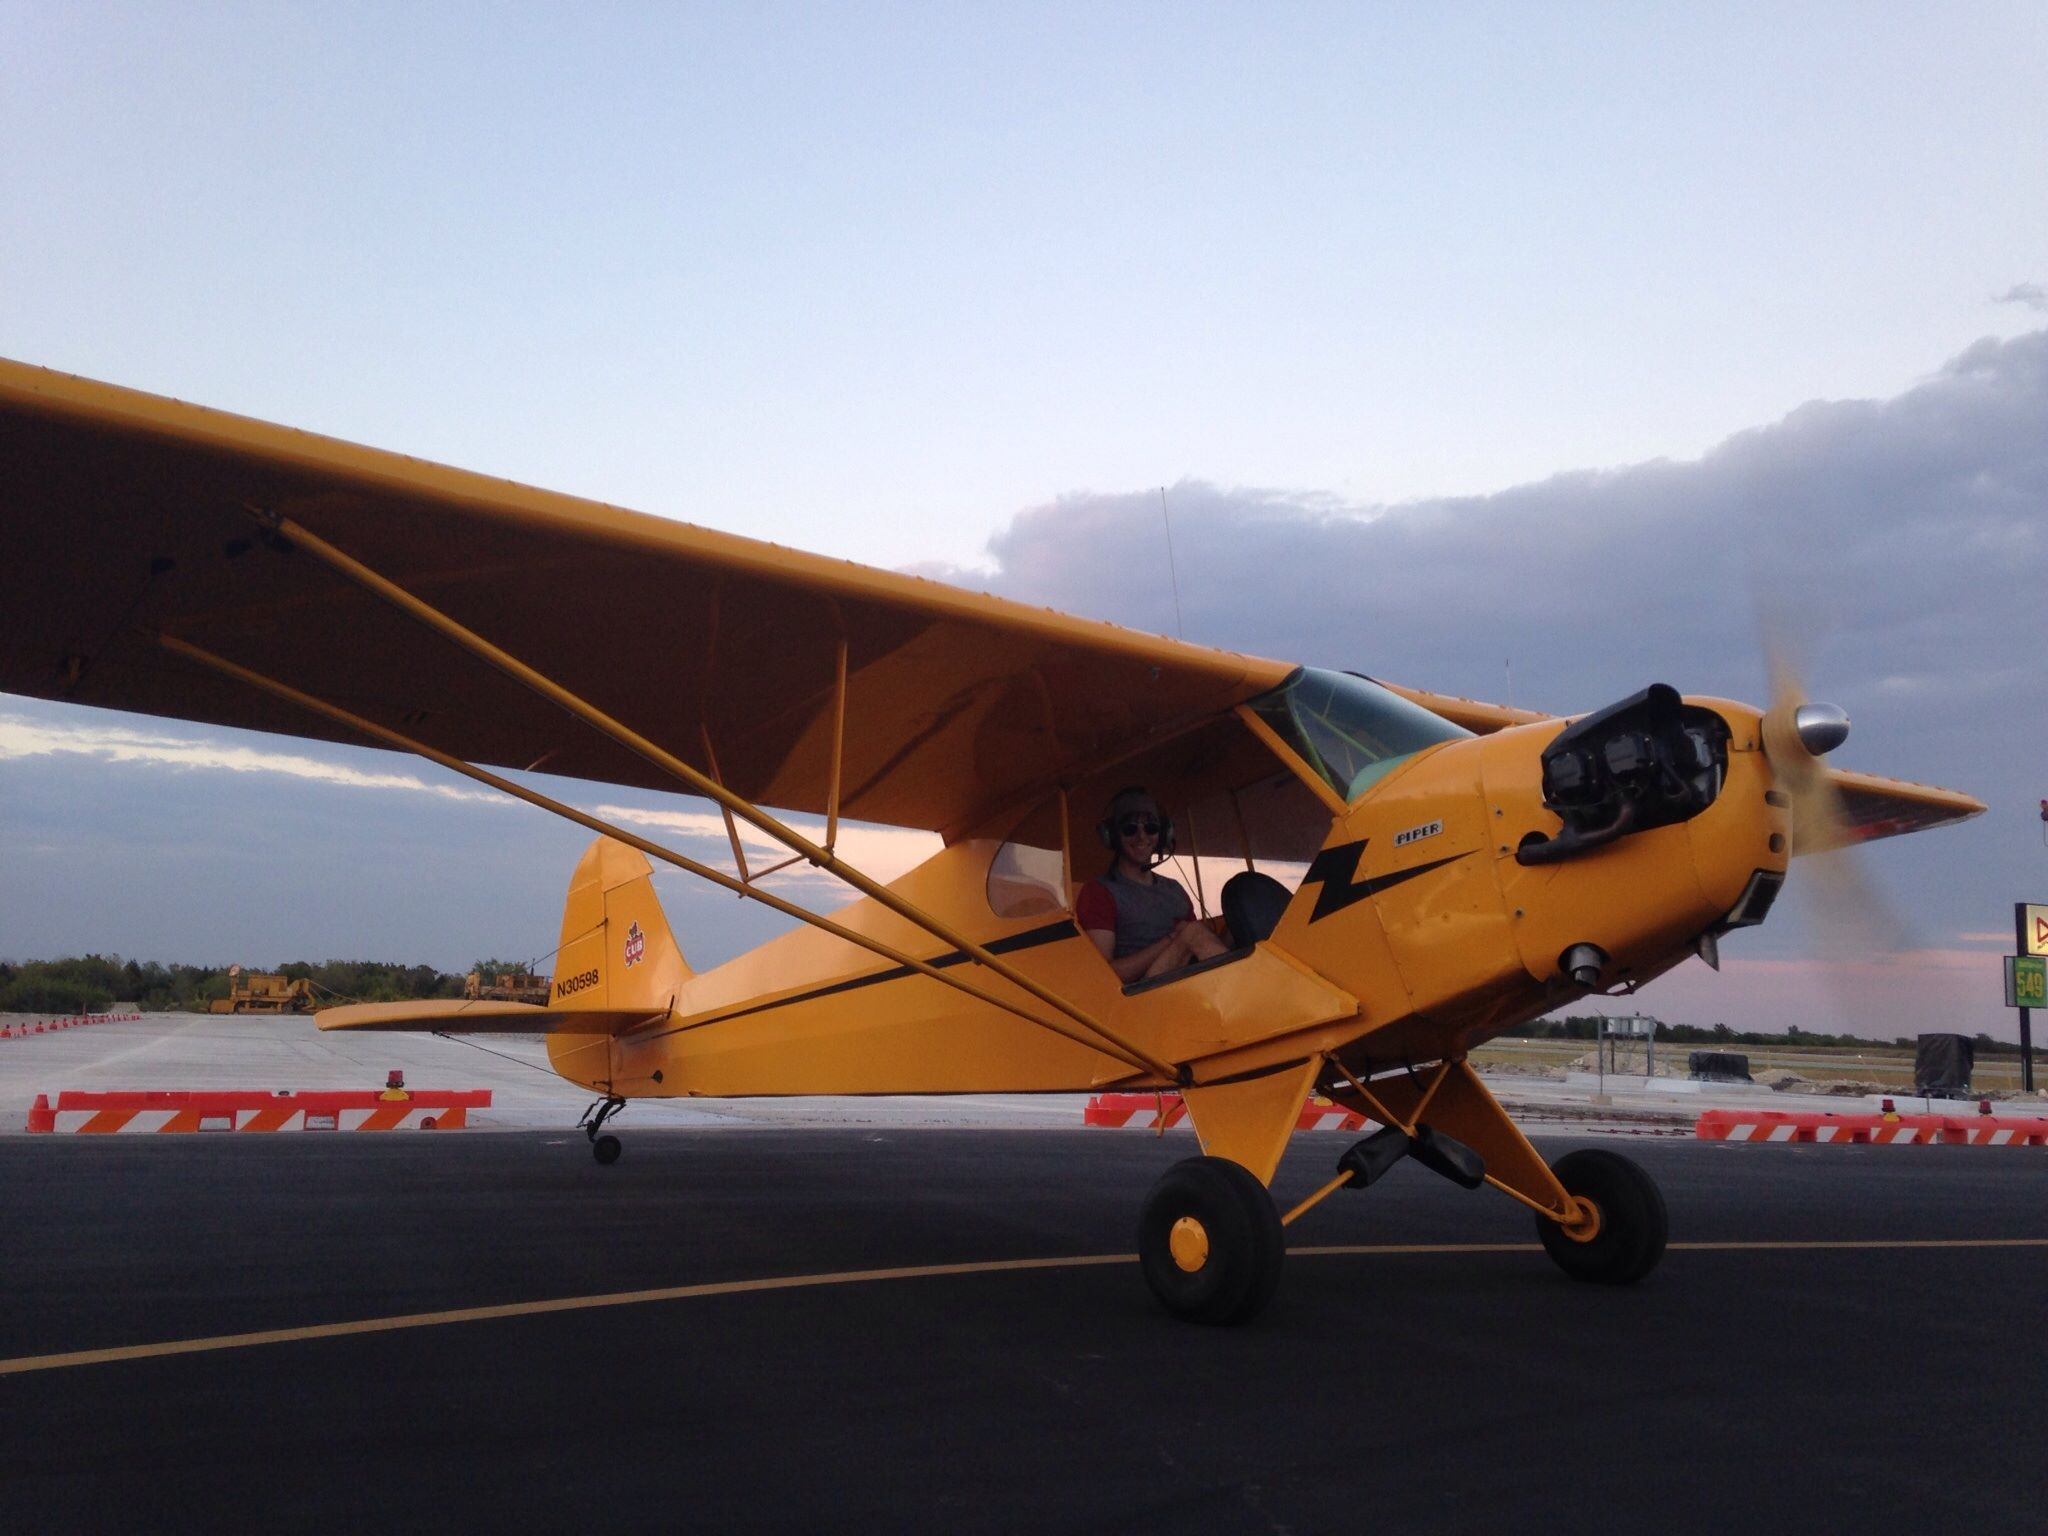 Please Contact us to arrange rental or flights in our Piper J3 Cub